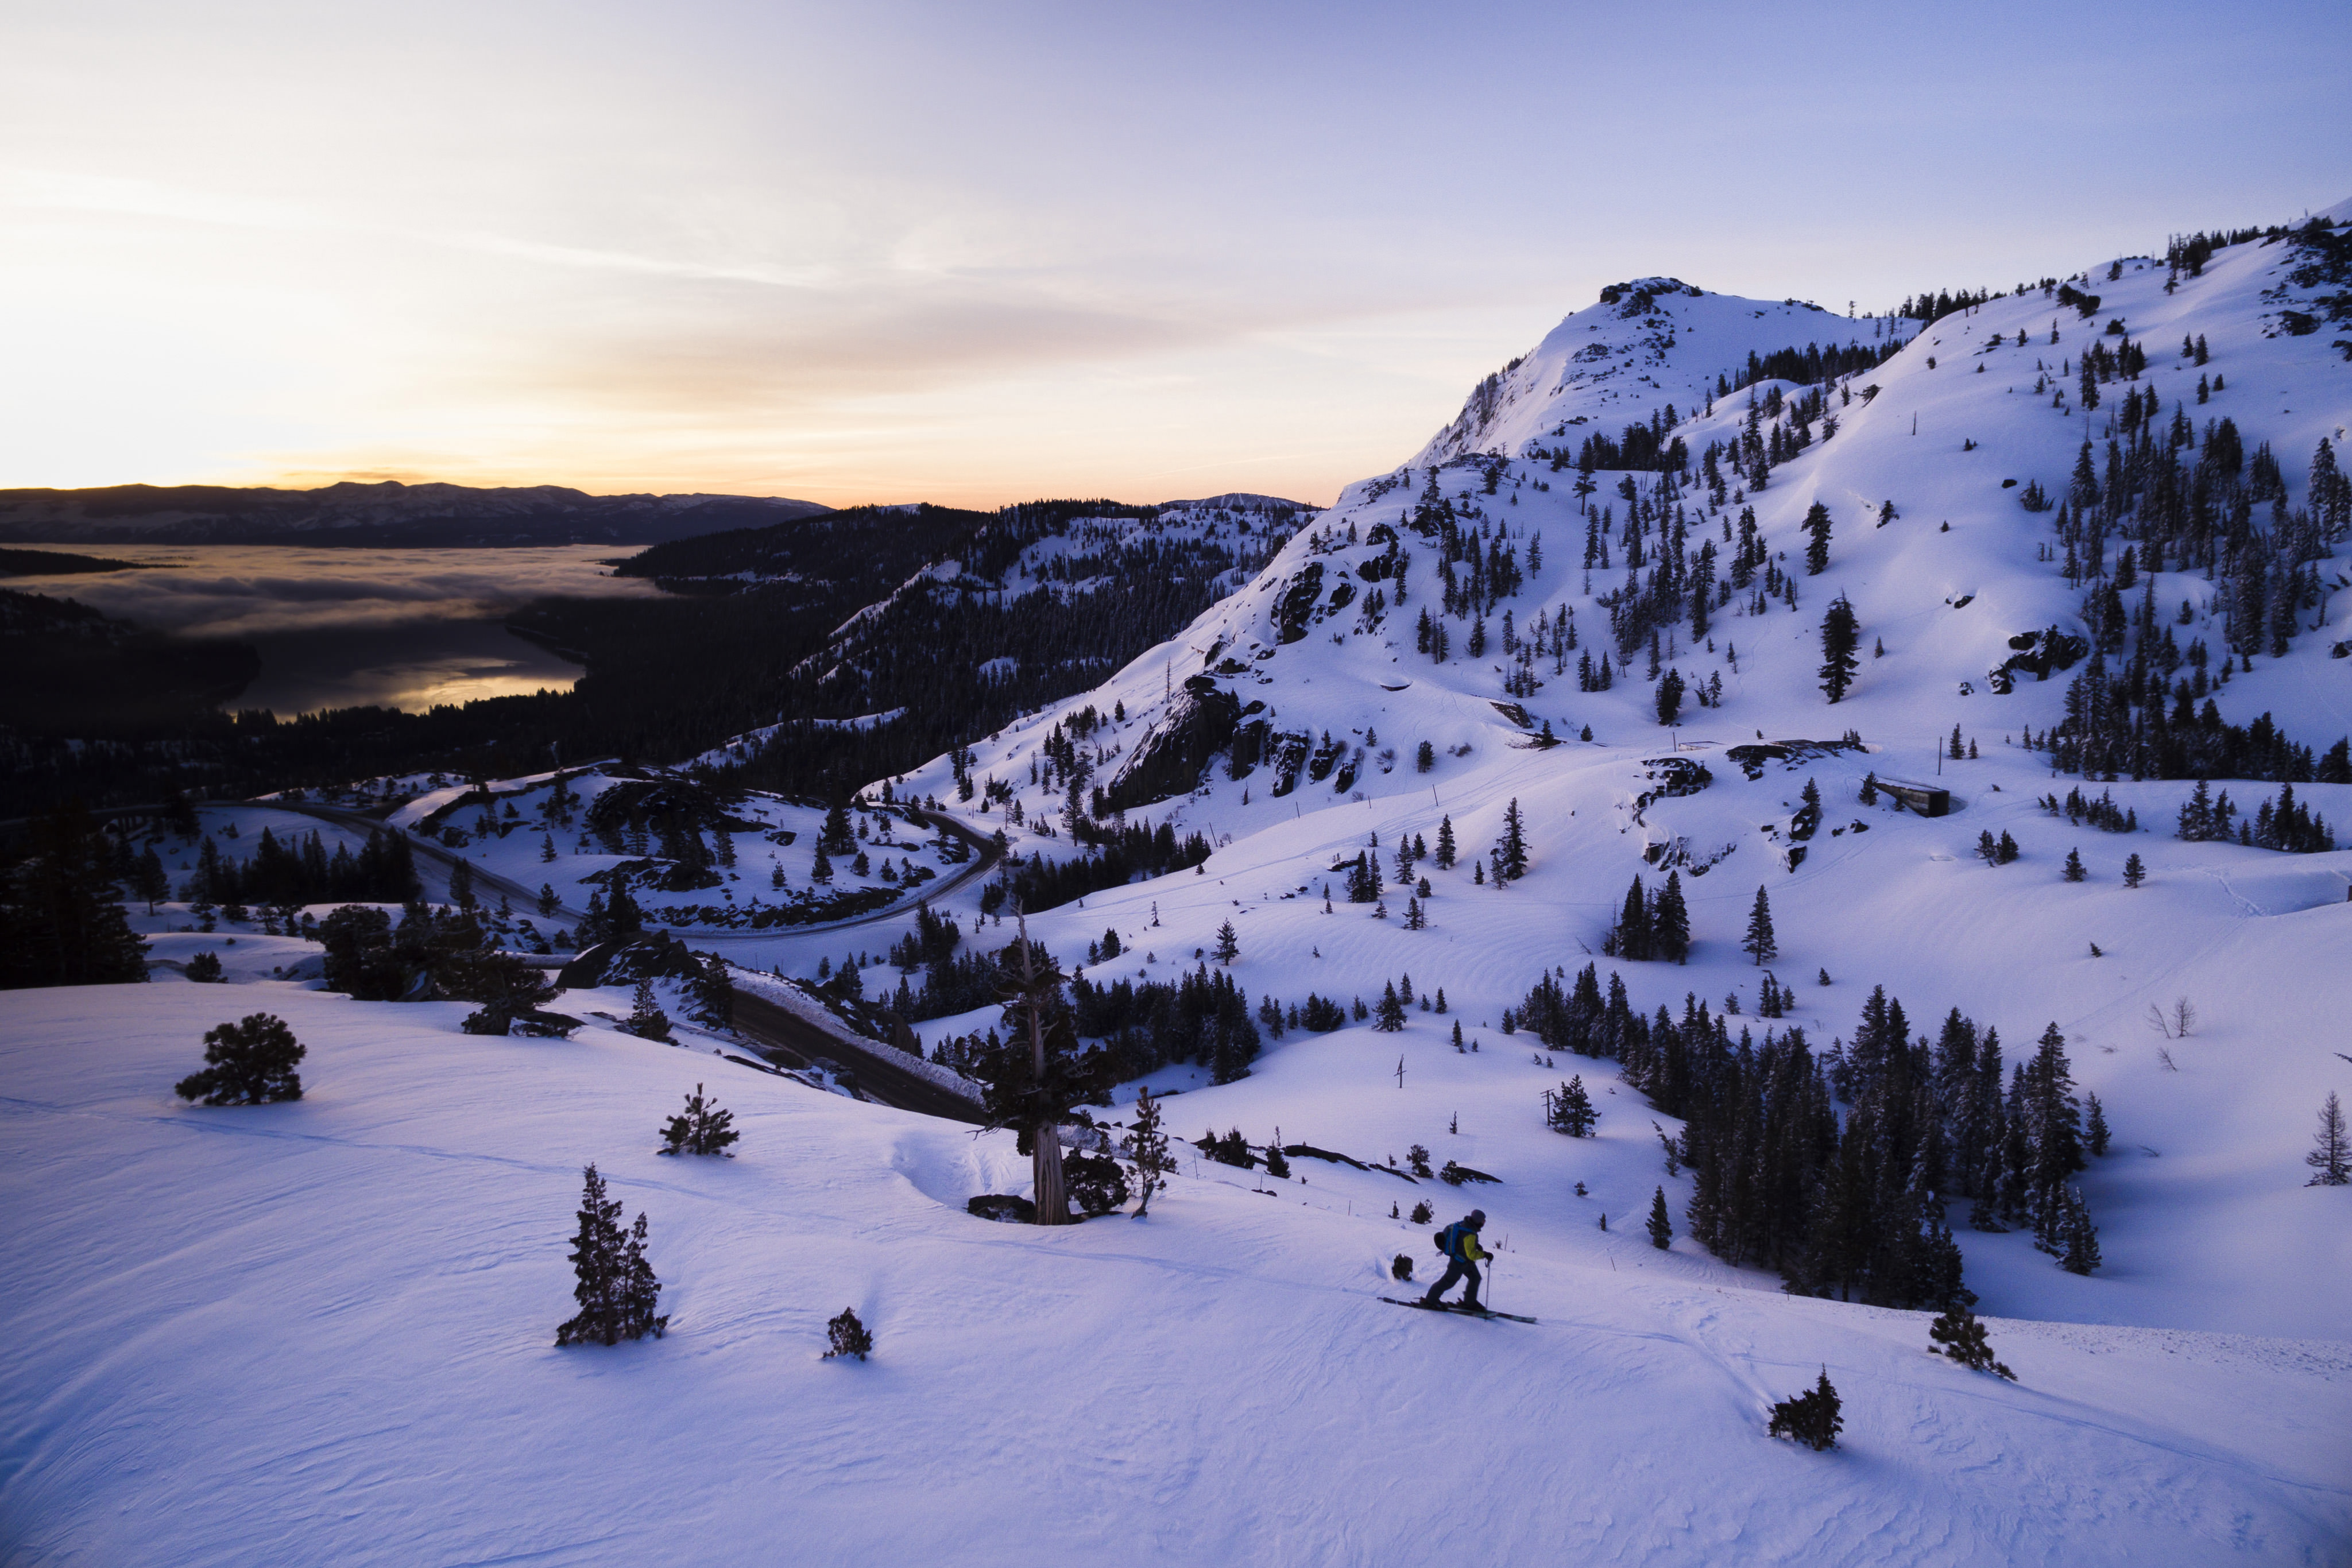 skier in the morning light from a drone